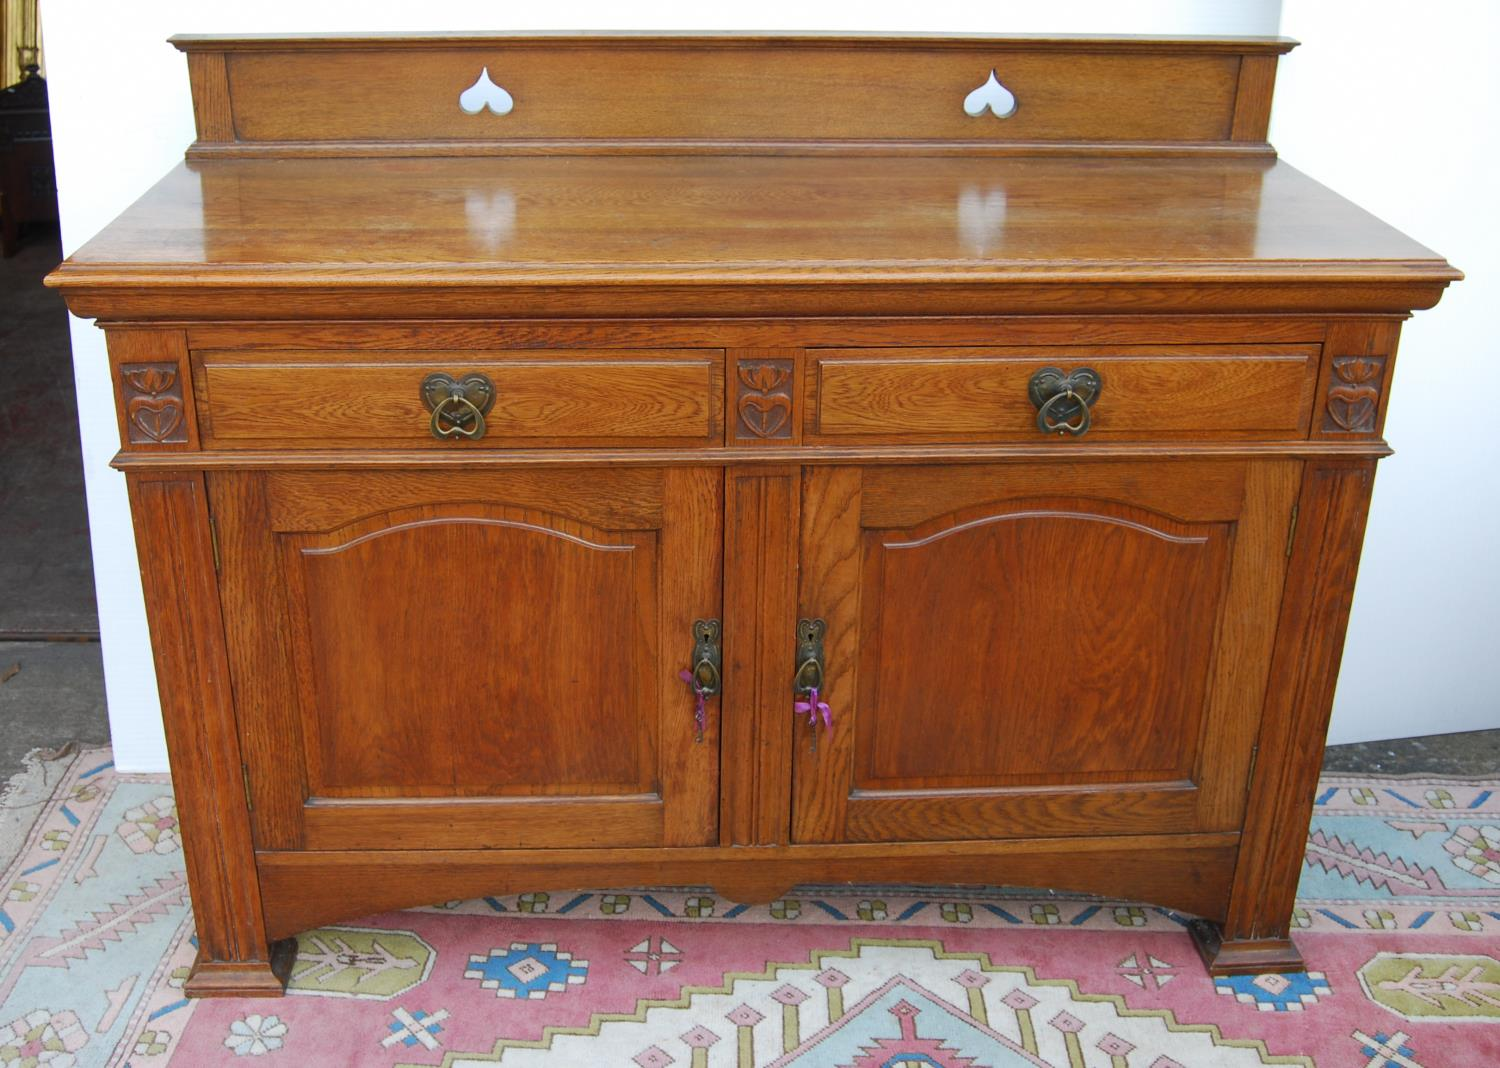 Aesthetic oak sideboard, the back panel with pierced inverted hearts, moulded rectangular top over